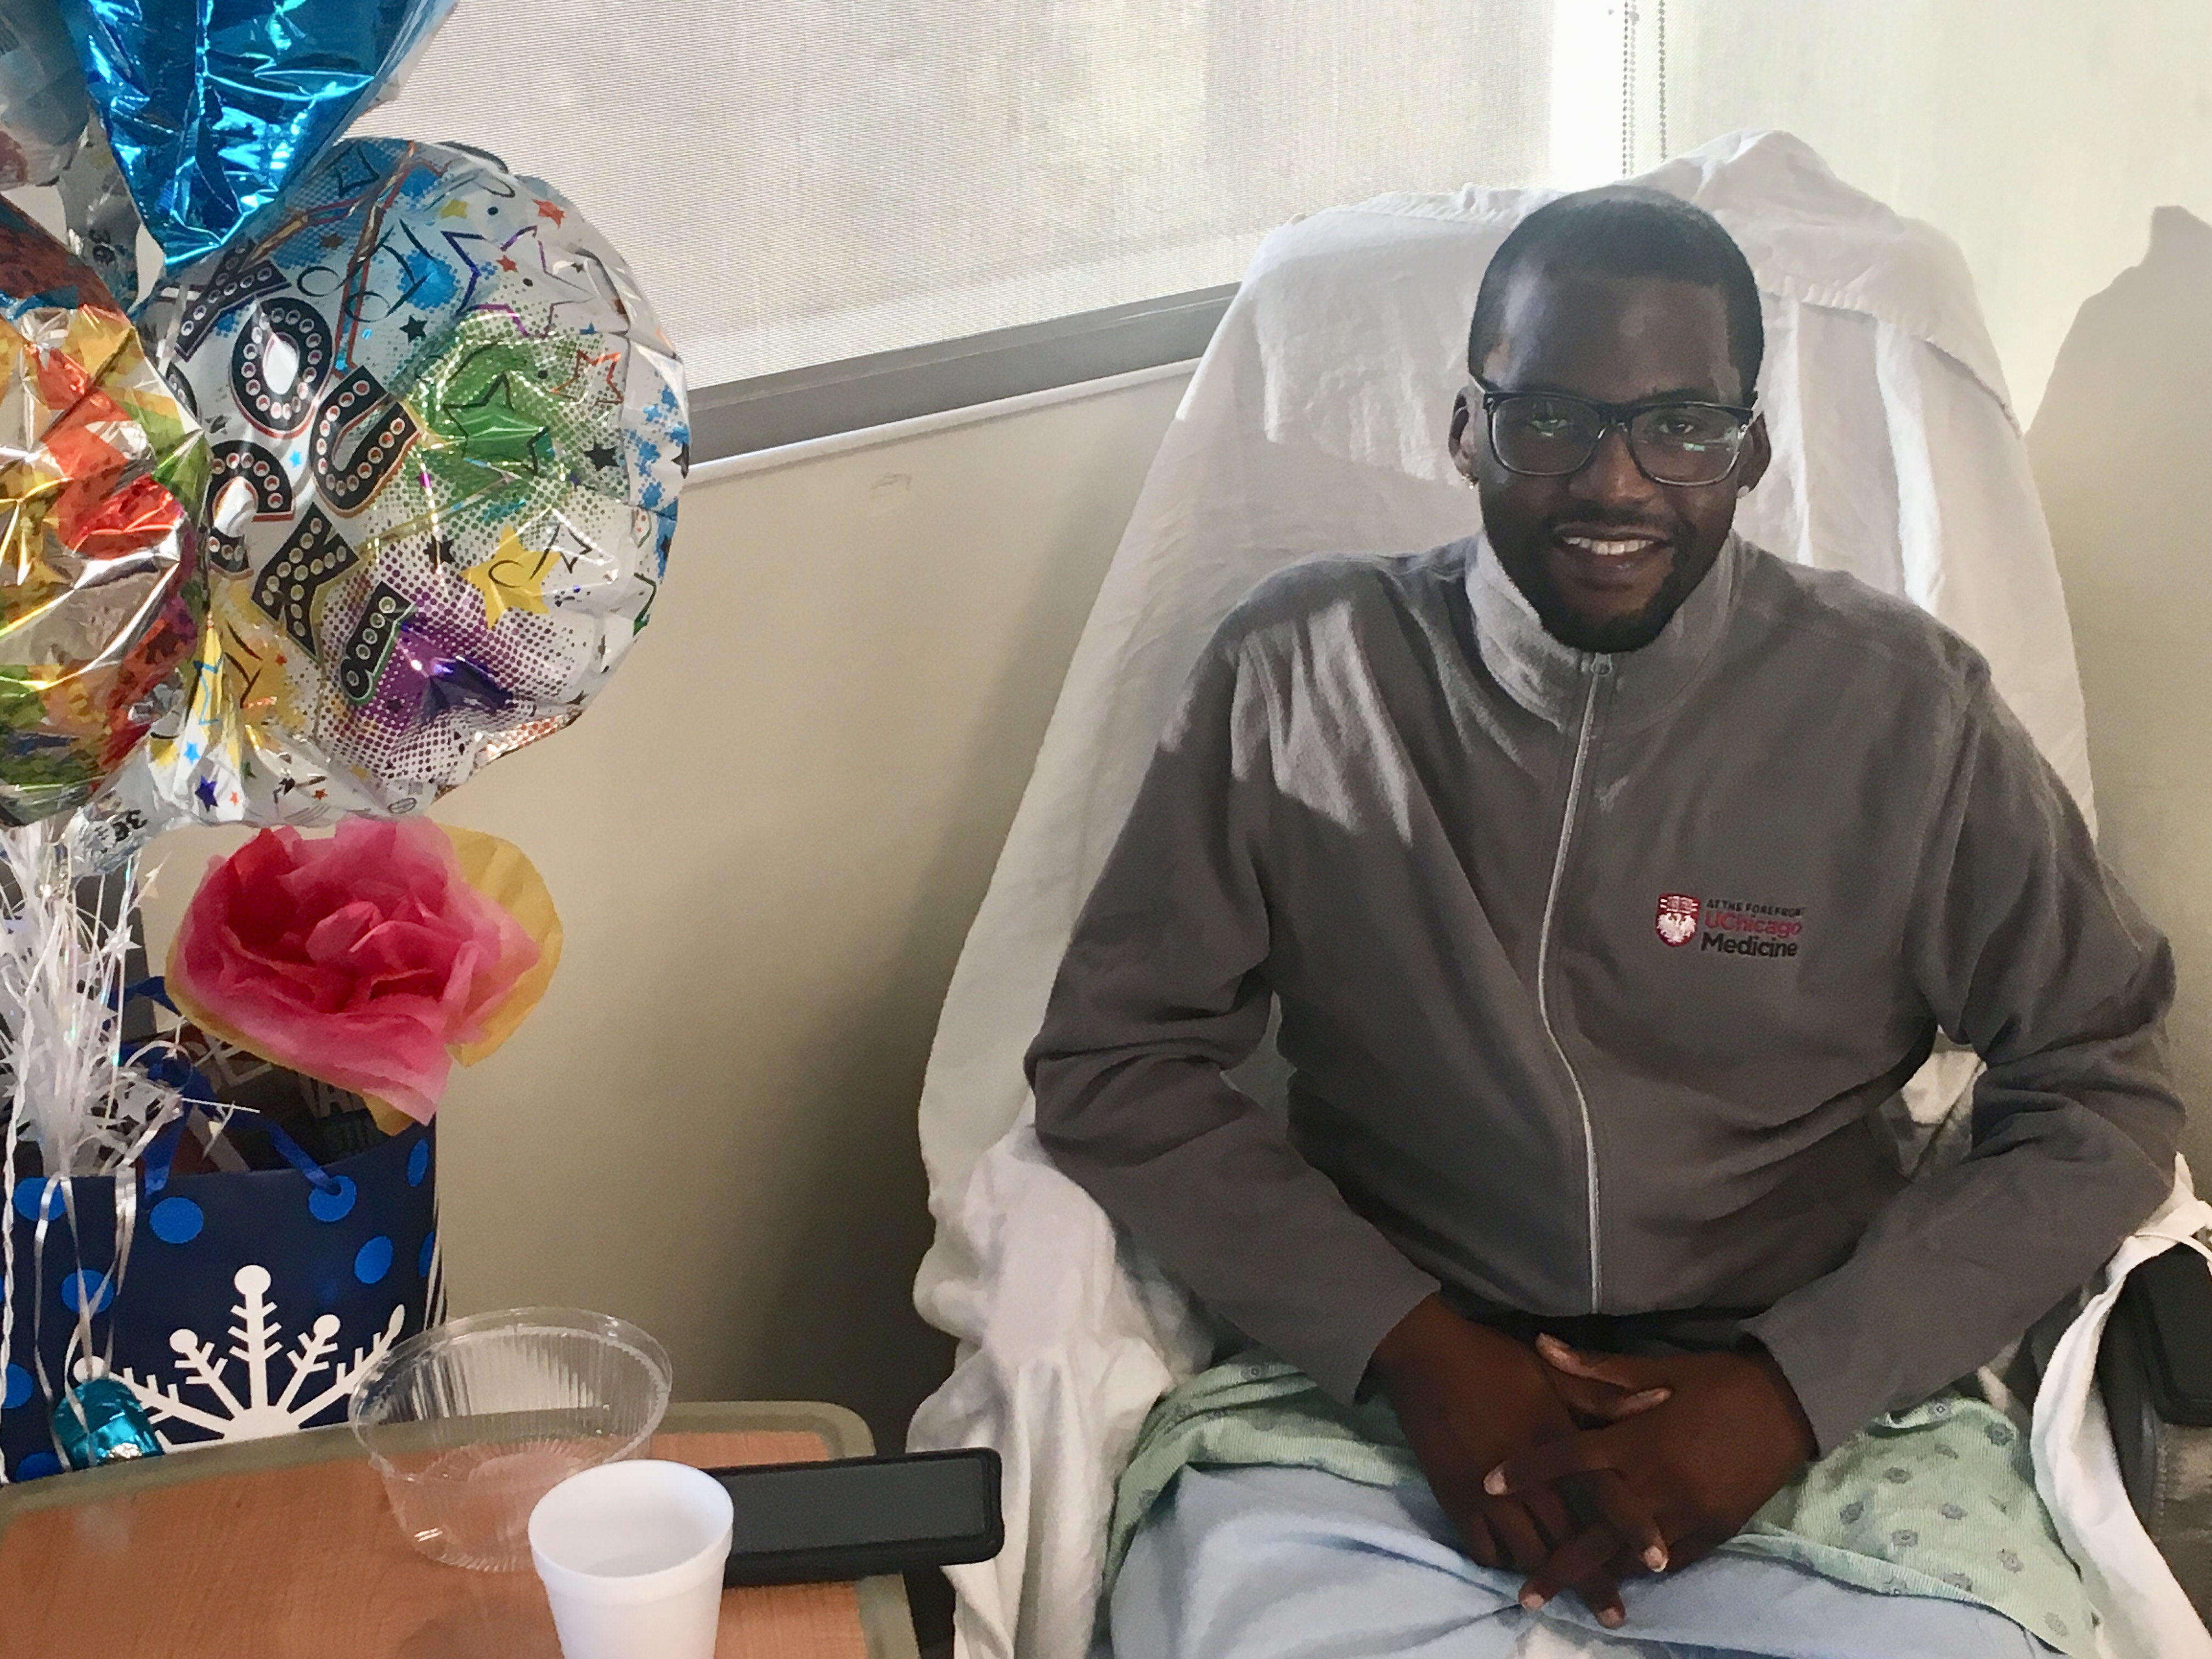 Daru Smith, 29, of Chicago resting in his hospital room several weeks after undergoing a rare triple organ transplant. (Photo by Michael Puente, WBEZ)